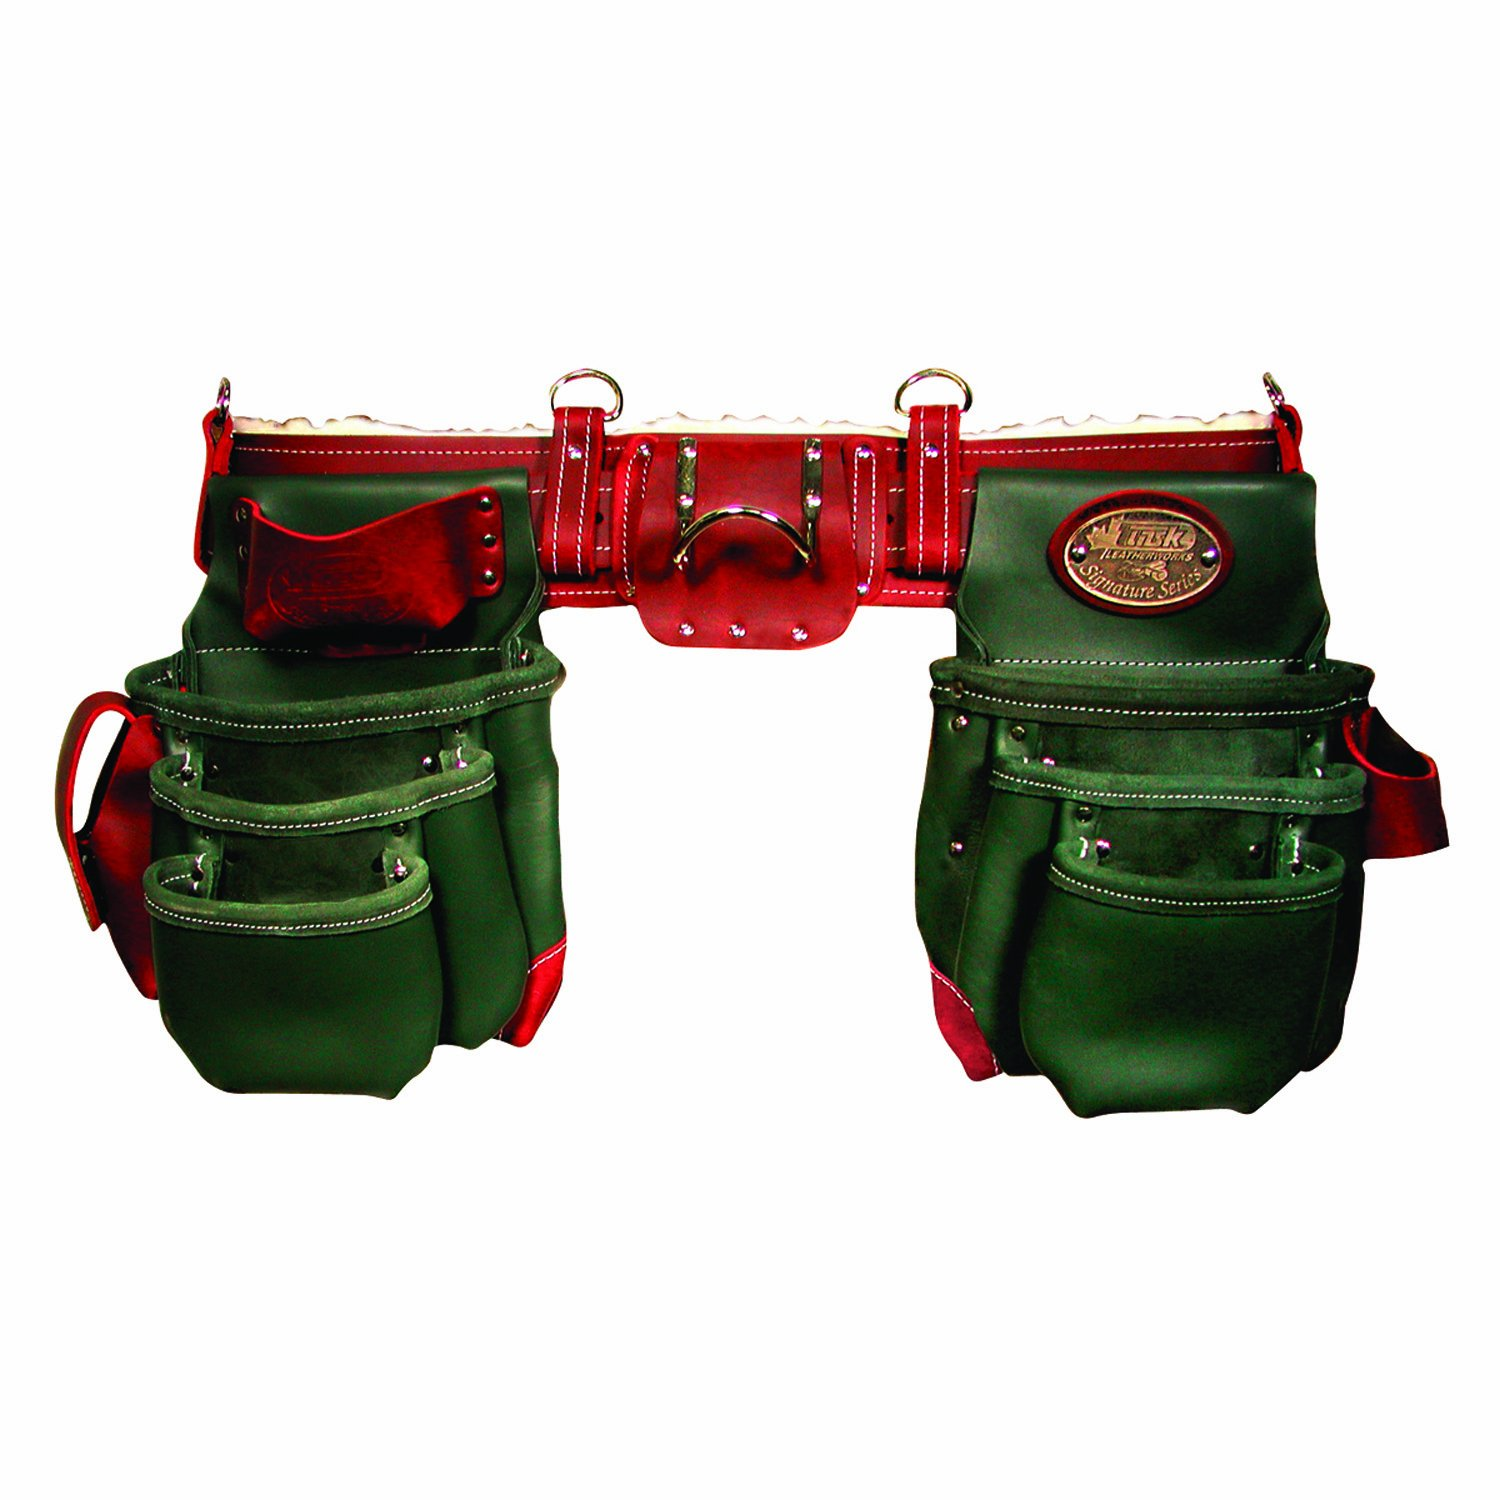 Task Tools T77551 Component Work Belt System  with Sheepskin, Green and Burgundy, 11-Pocket